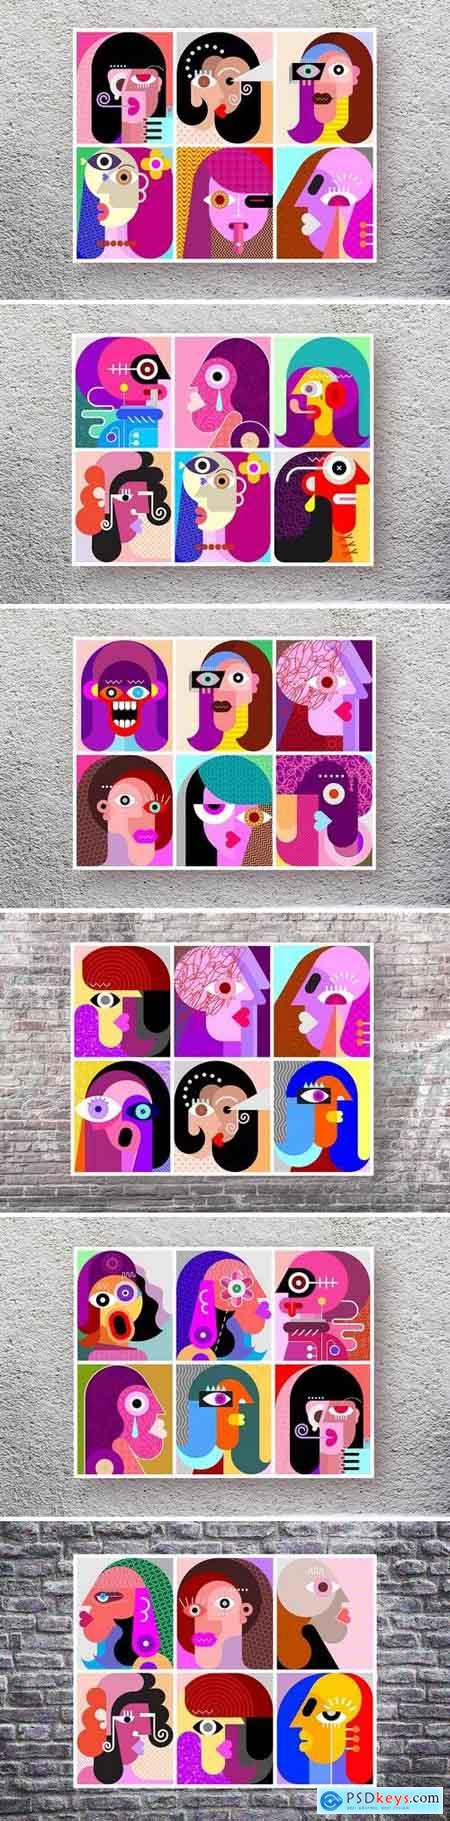 Six Faces layered vector modern art illustration bundle